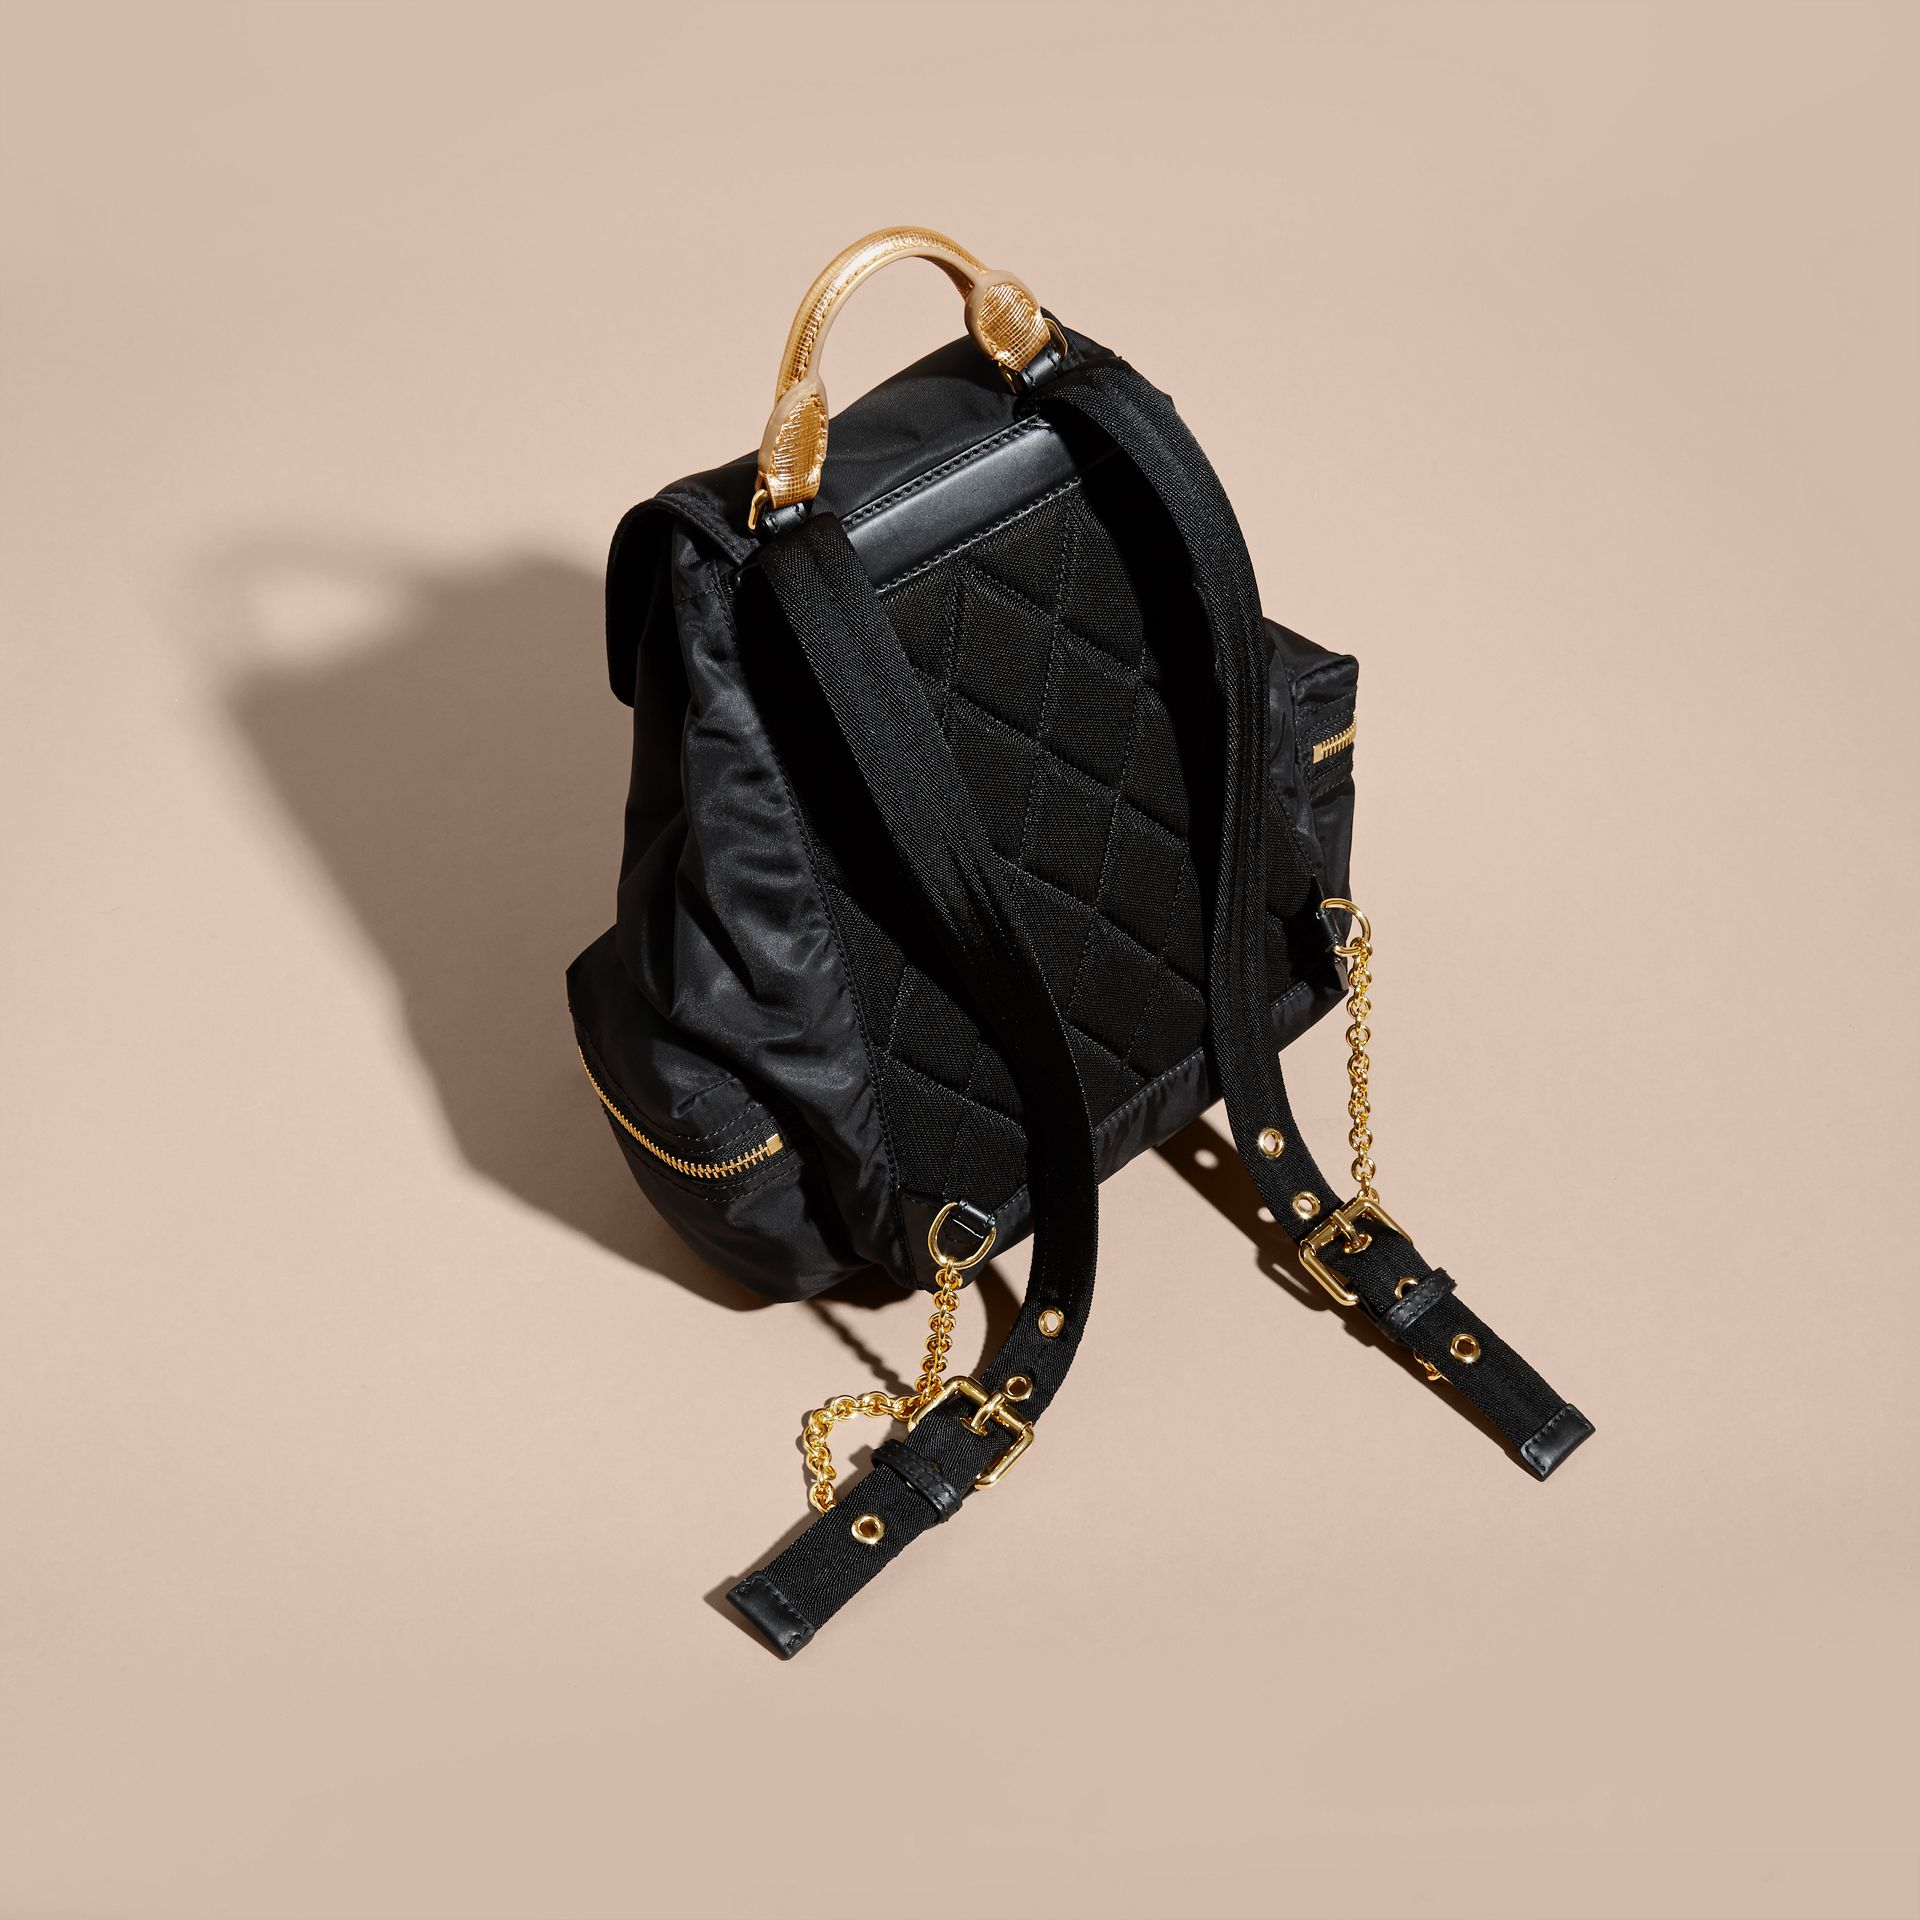 Black/gold The Medium Rucksack in Two-tone Nylon and Leather Black/gold - gallery image 4